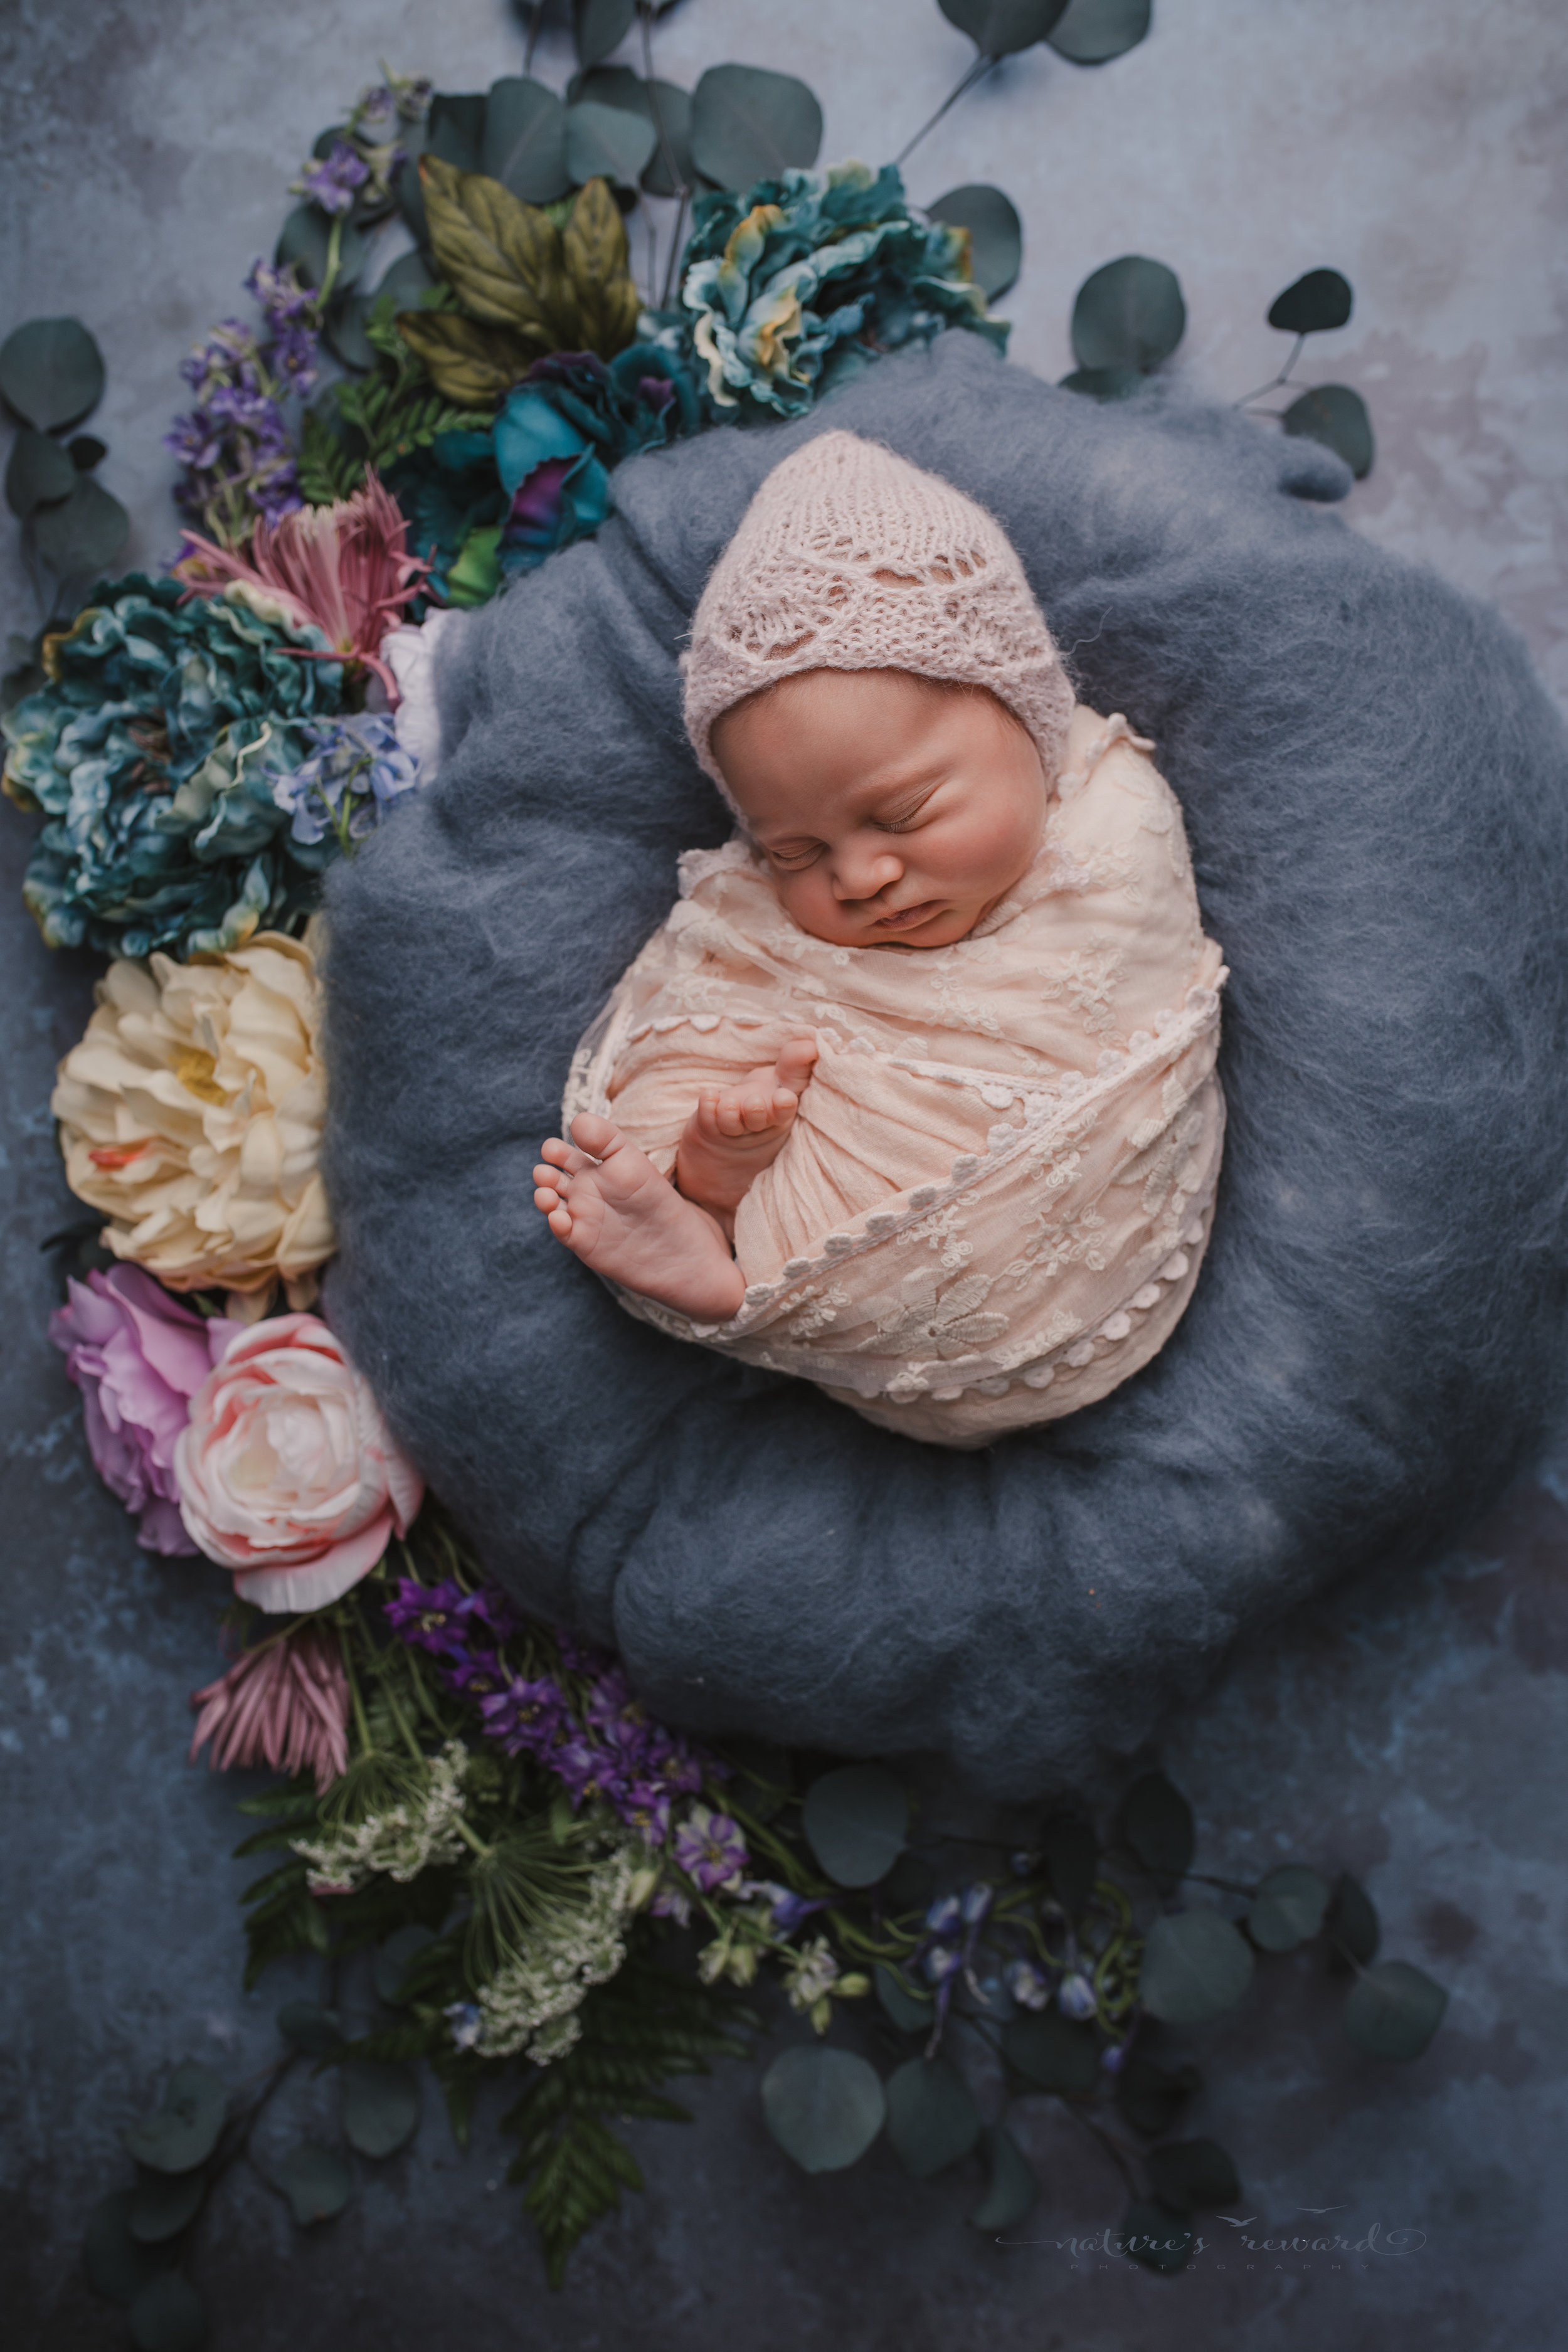 Newborn baby Girl swaddled in pink with her toes showing on a blue and grey floral backdrop surrounded by colorful flowers in this baby portrait by Nature's Reward Photography